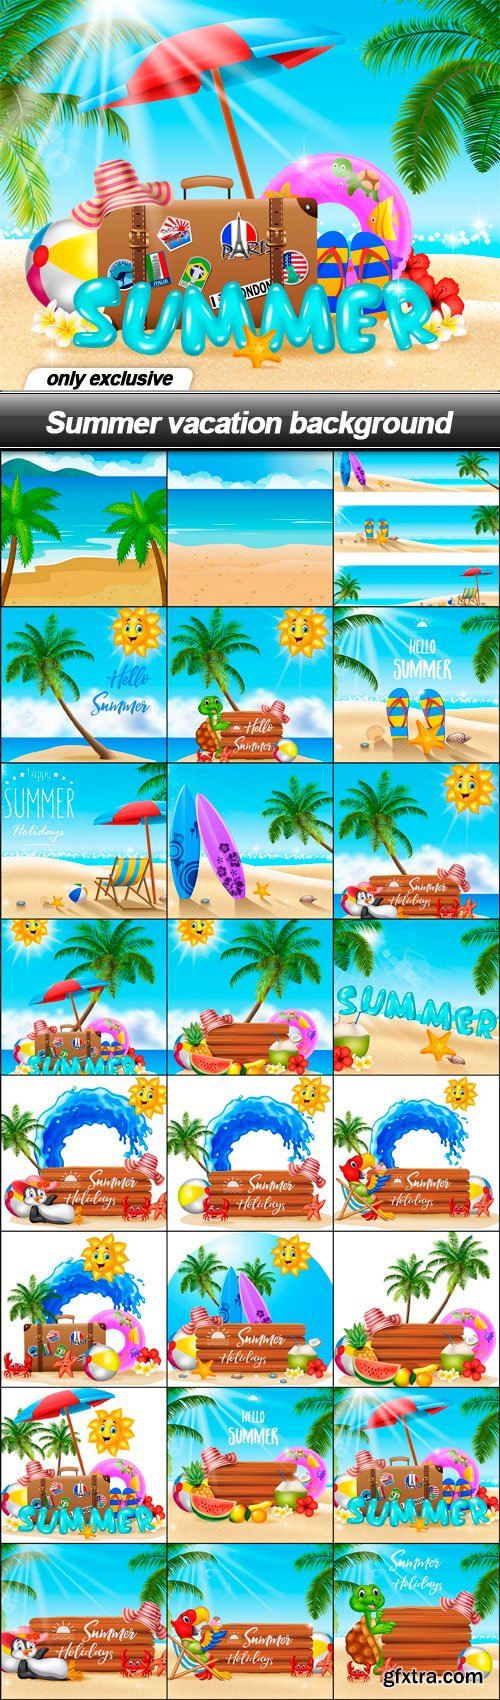 Summer vacation background - 24 EPS